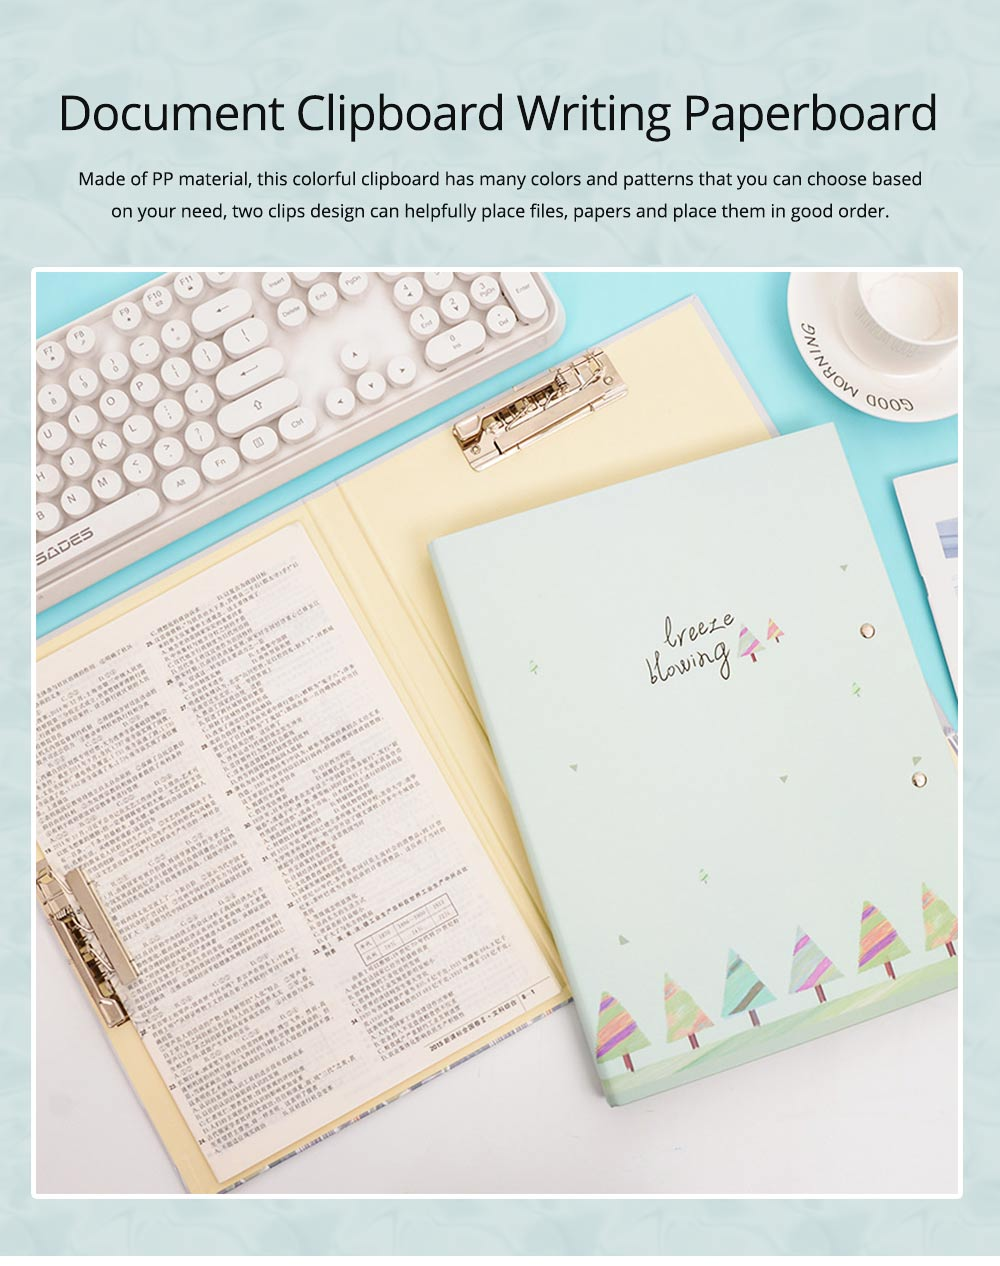 A4 Paper Size Document Clipboard Writing Paperboard Profile Clip for Student Teacher Officer 0